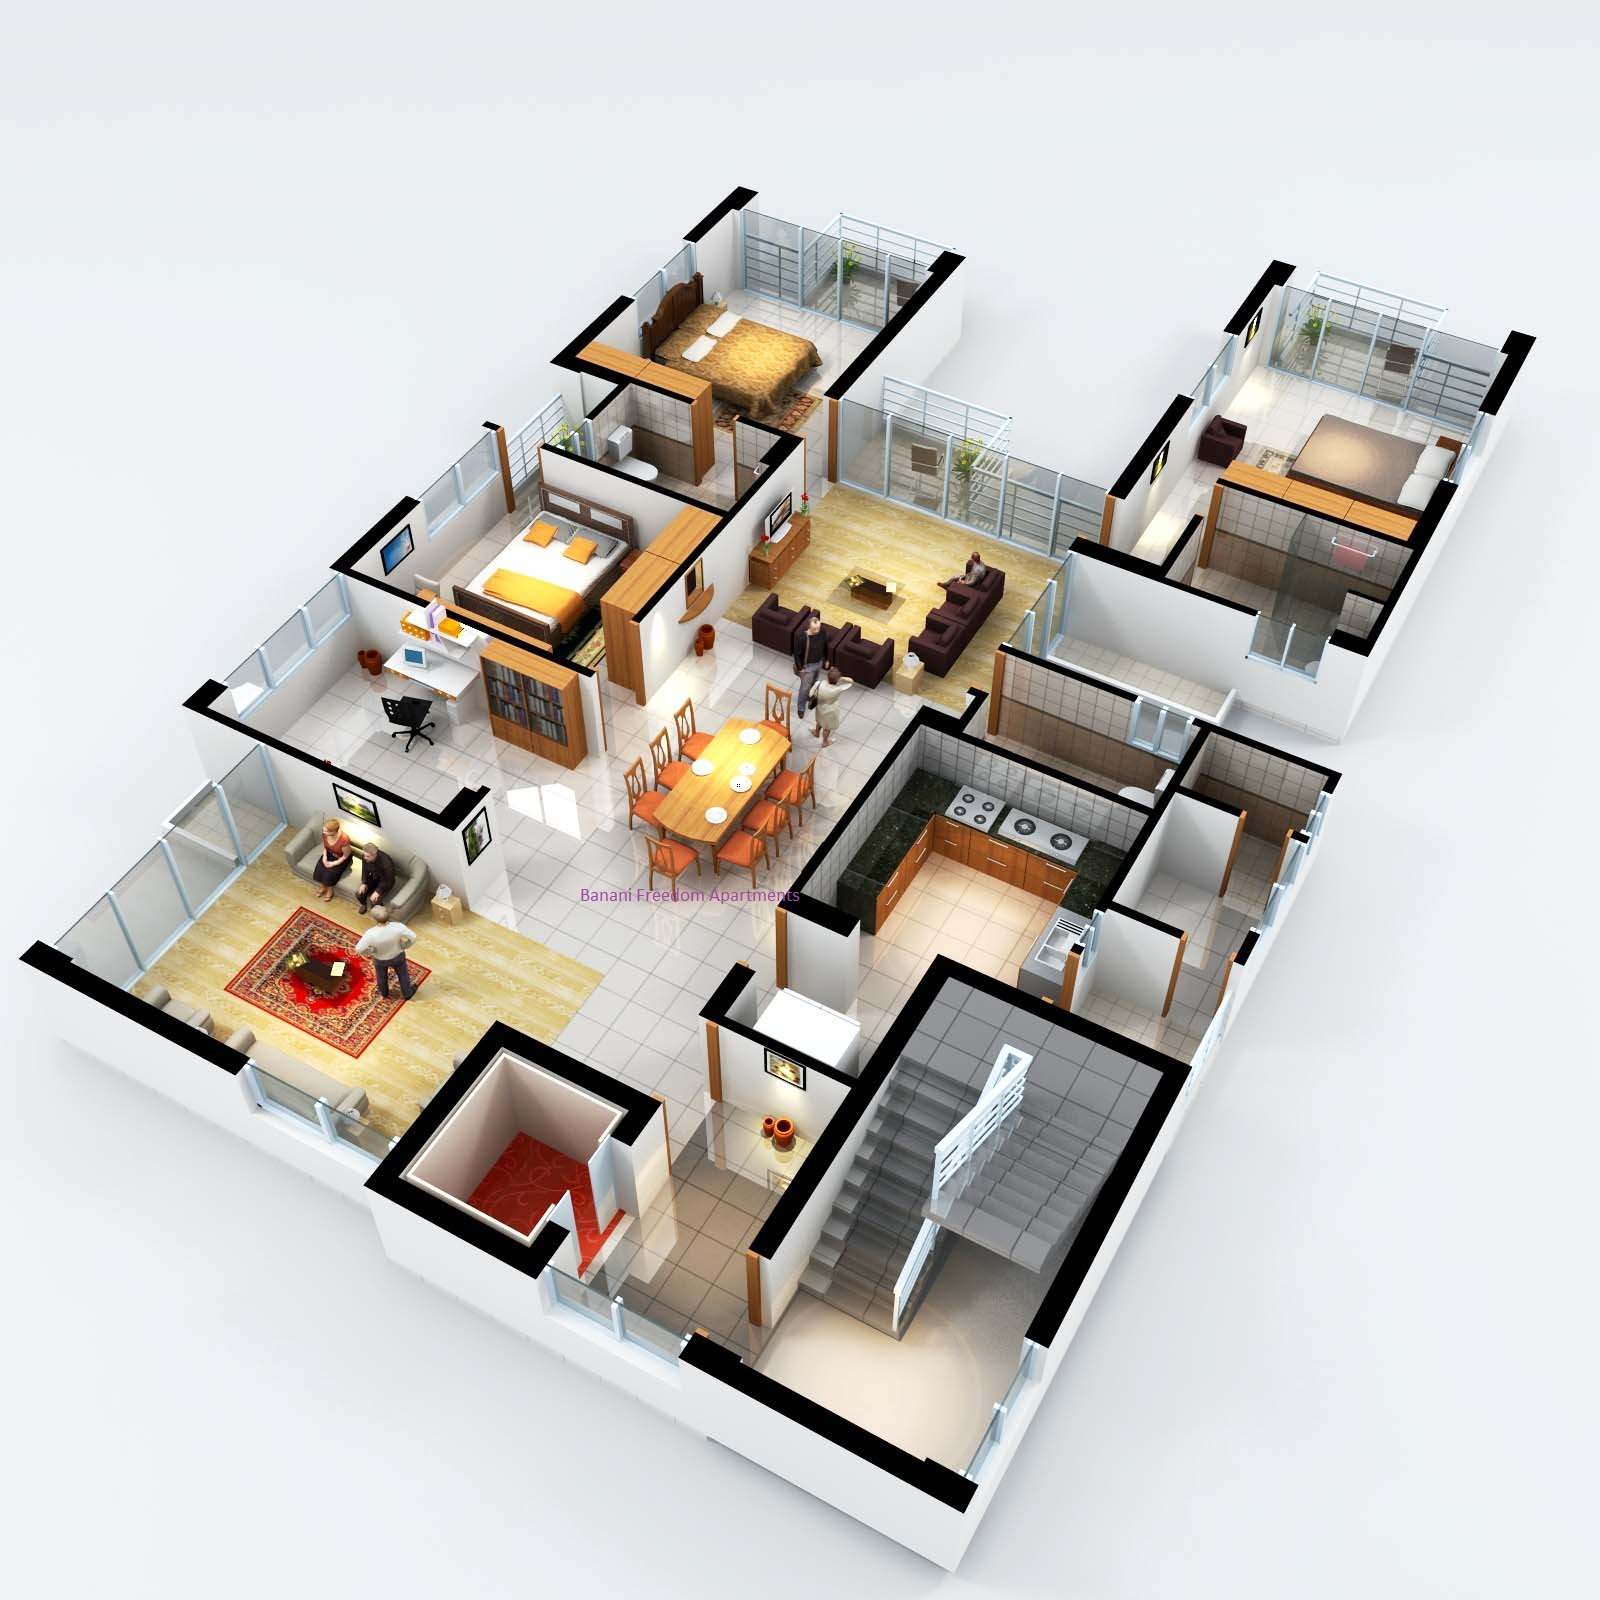 Banani freedom luxury apartments Home design plans 3d